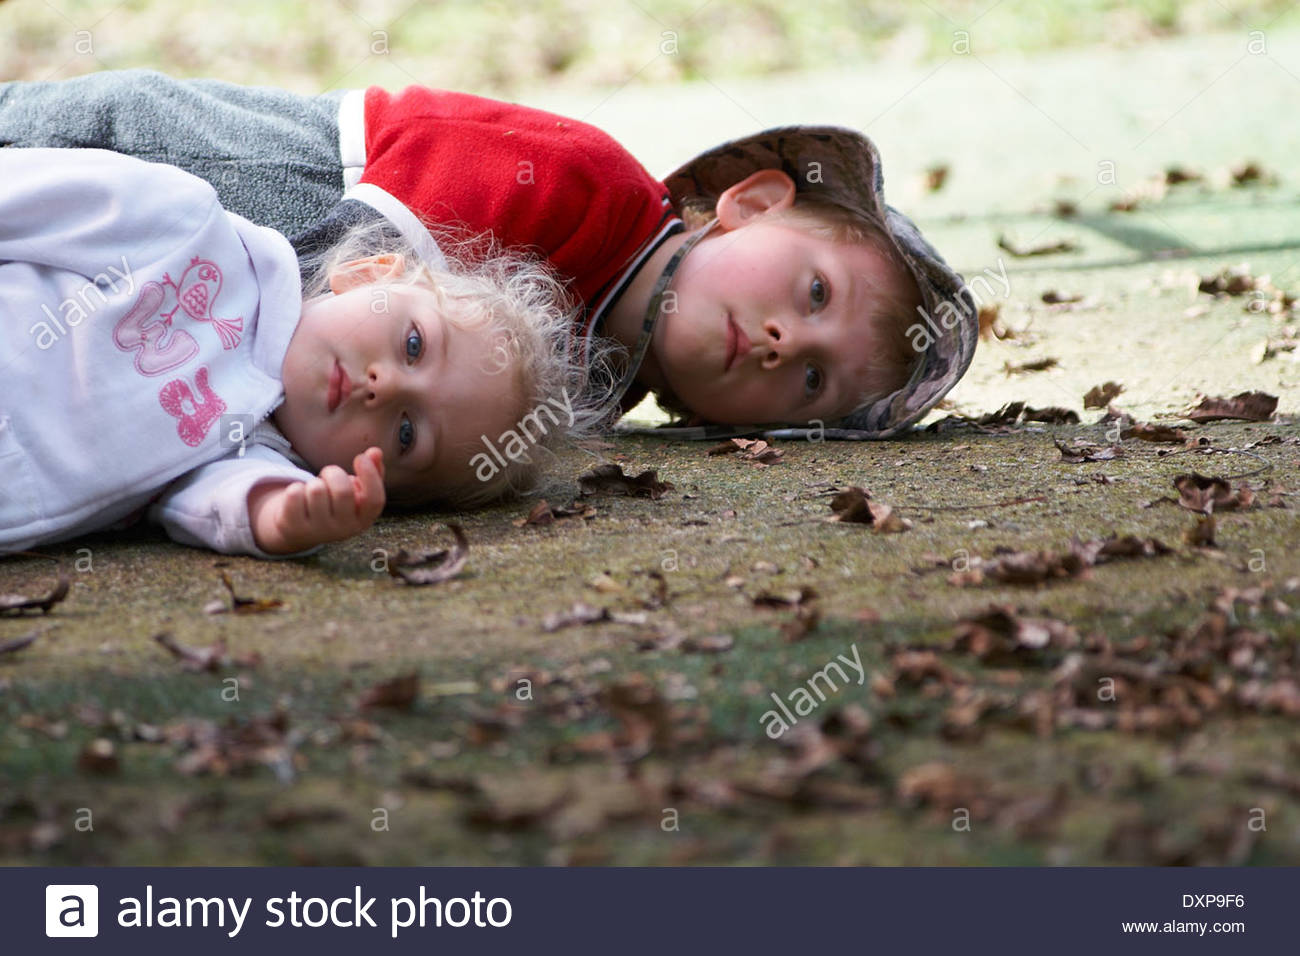 Brother and sister, lying on fake grass at school - doll-like / lifeless / 'playing dead' - a concerning, dramatic response to the camera's intrusion. - Stock Image